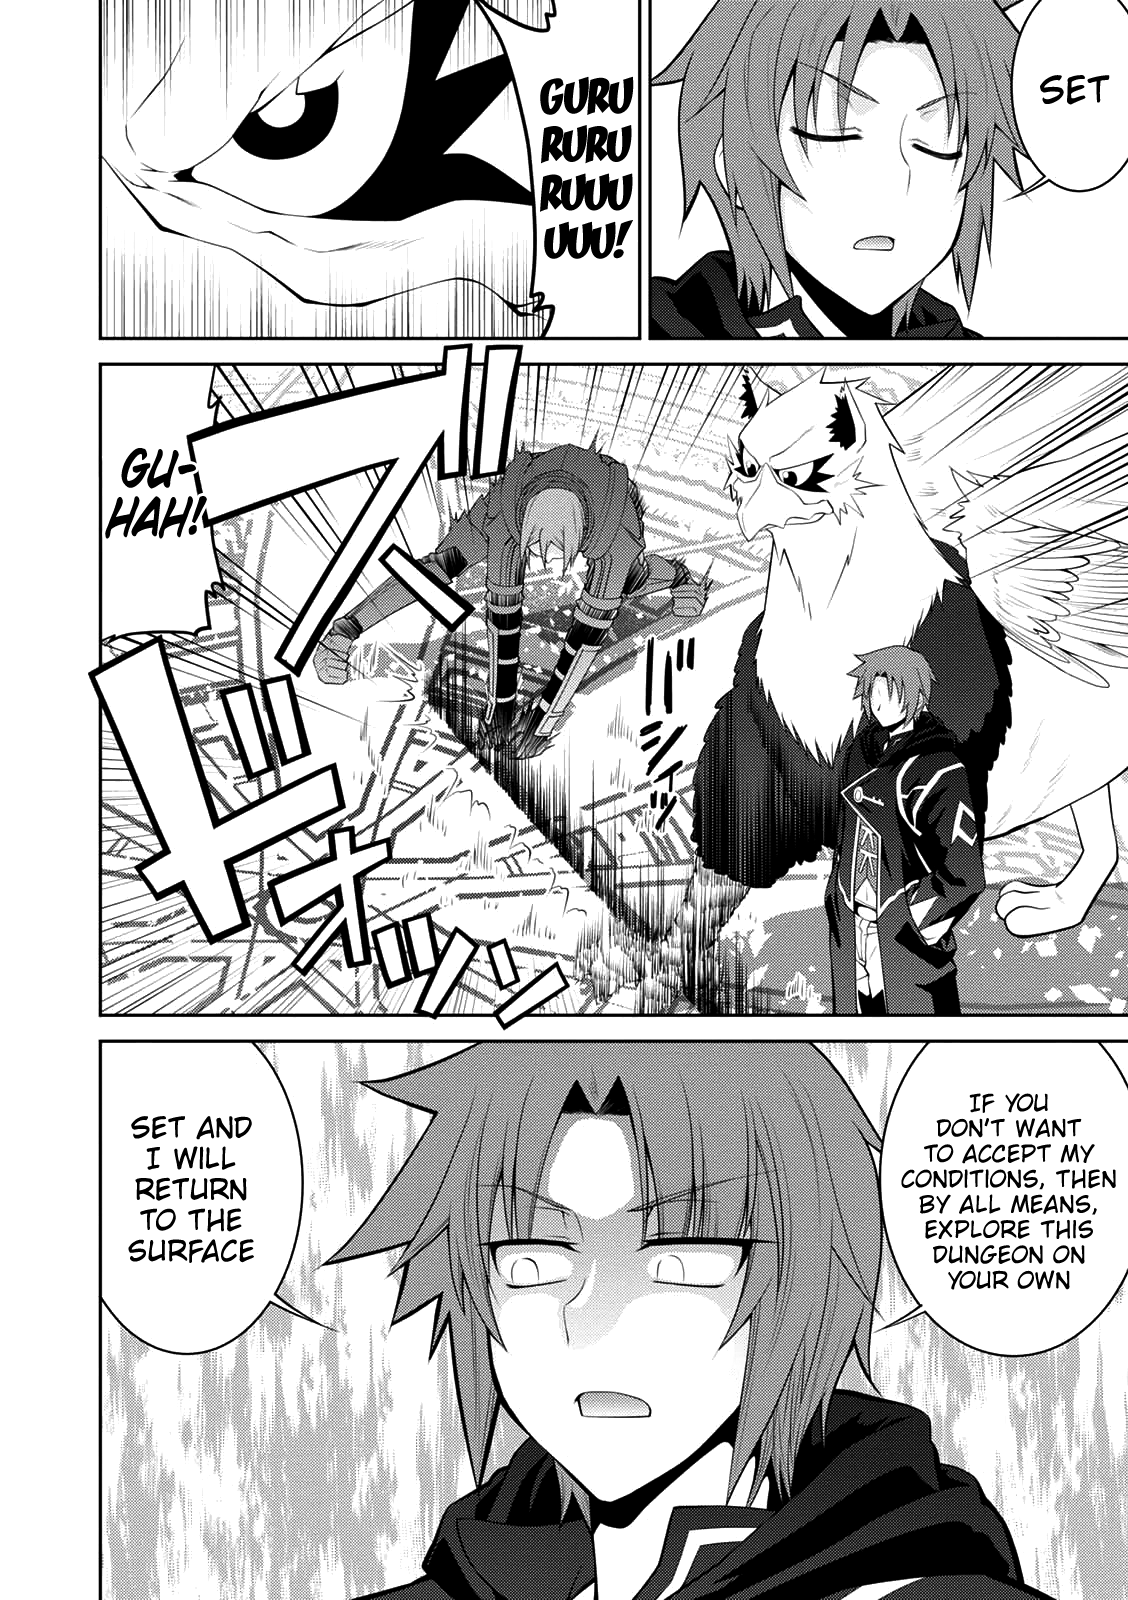 Legend (Takano Masaharu) - chapter 29 - #3